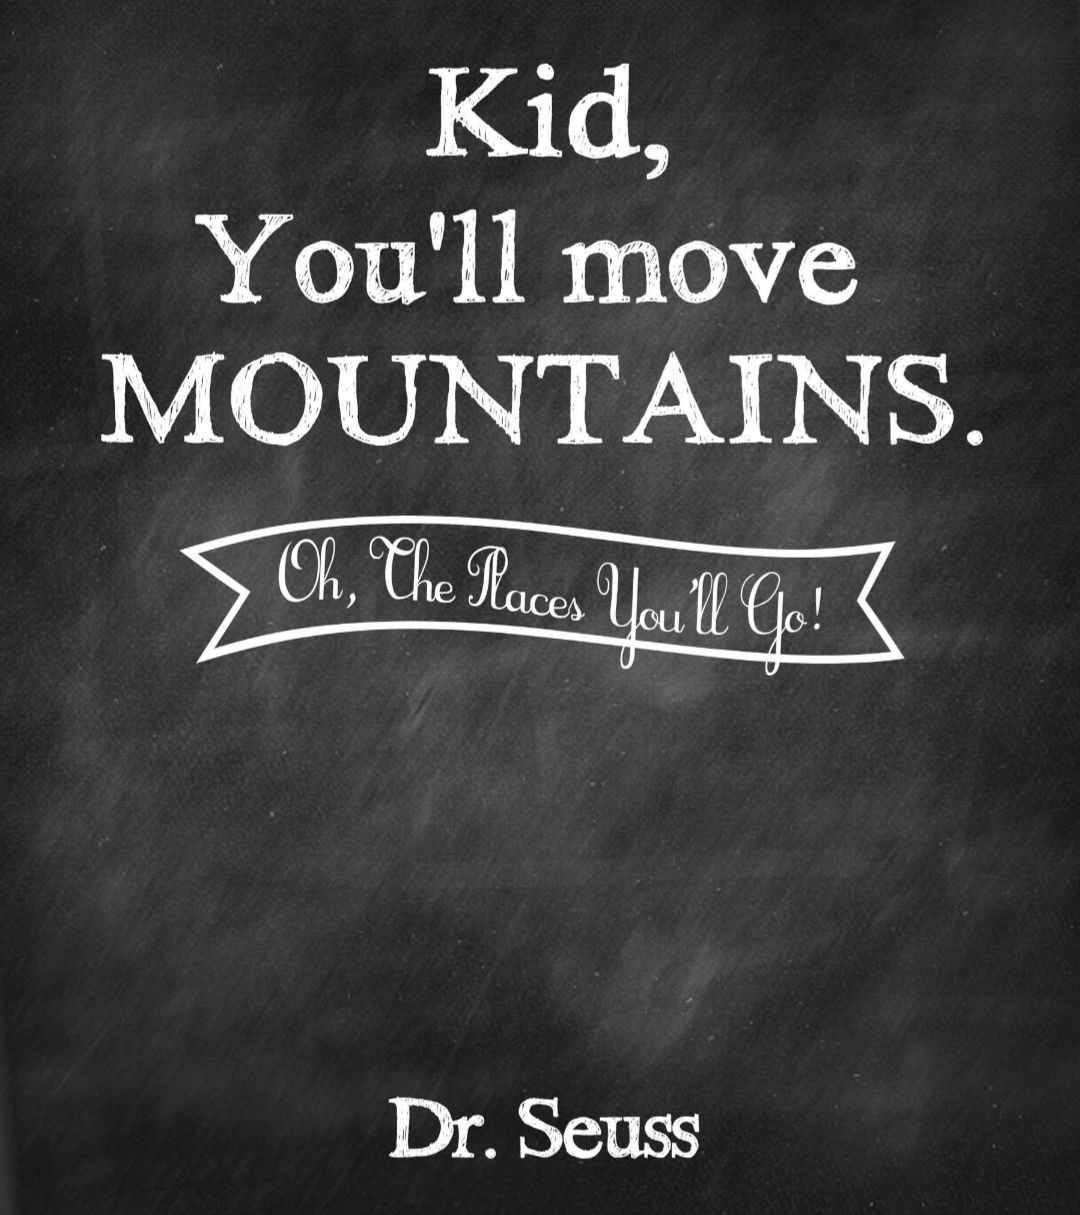 Dr Seuss Kid You Ll Move Mountains: She'll Move Mountains!